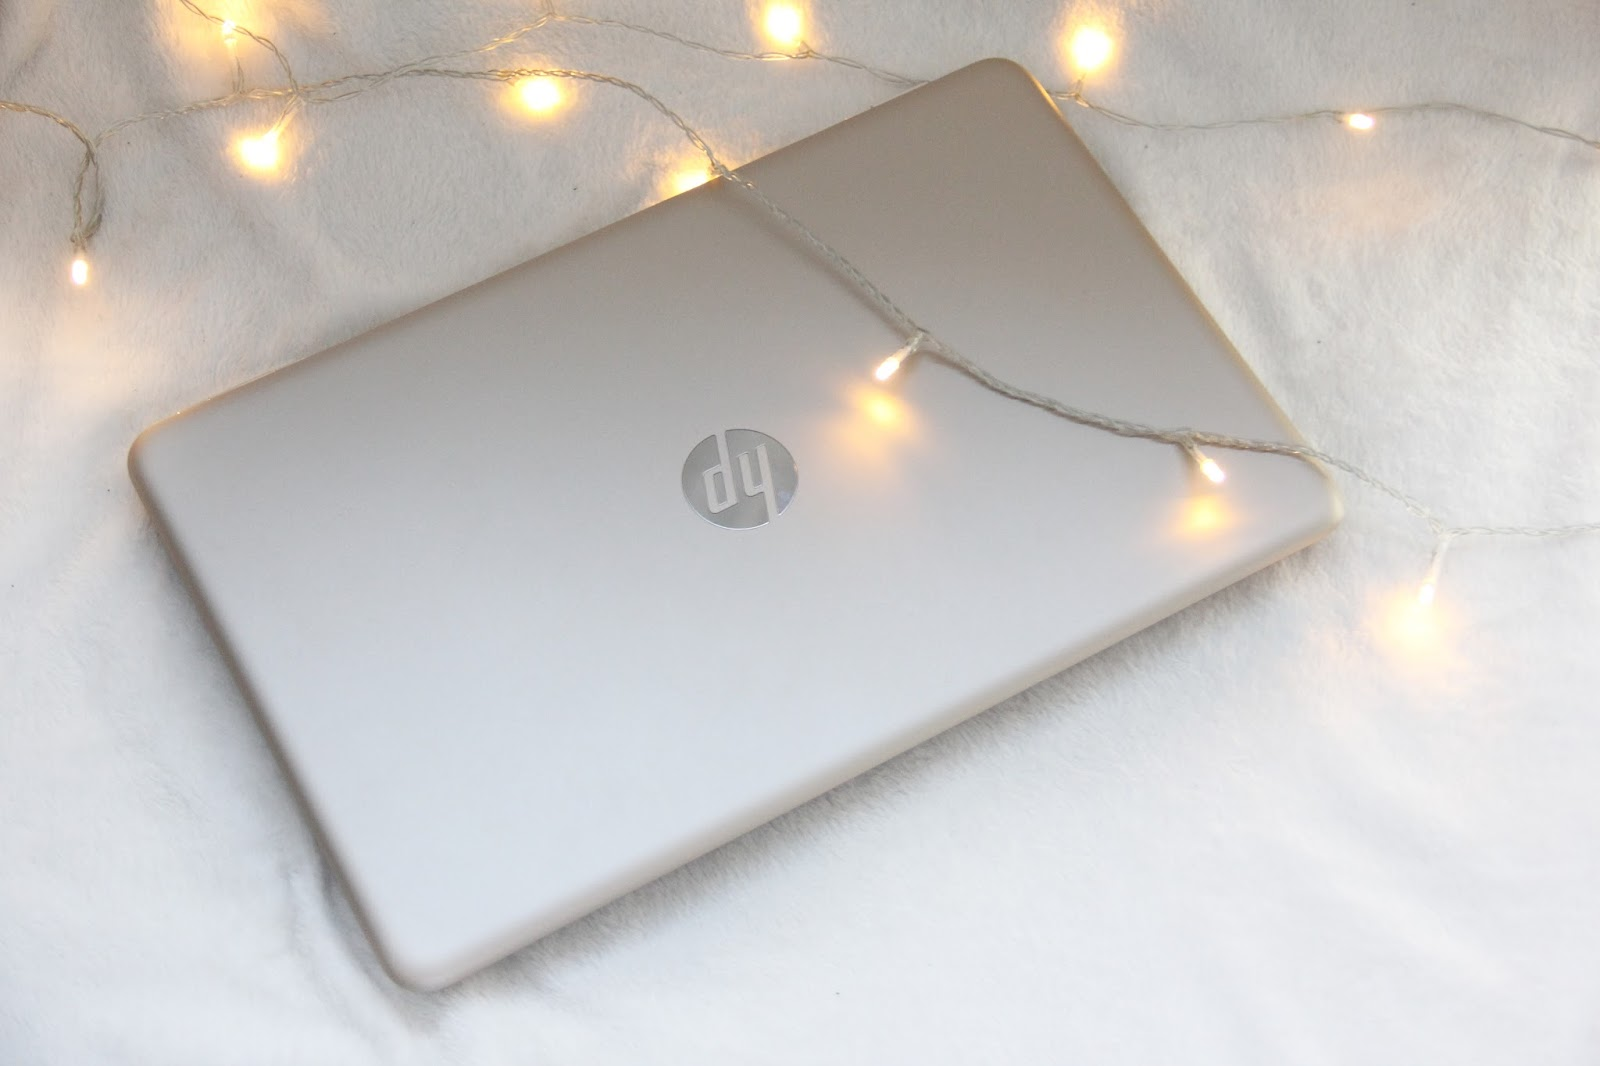 HP Pavilion Laptop in Gold.